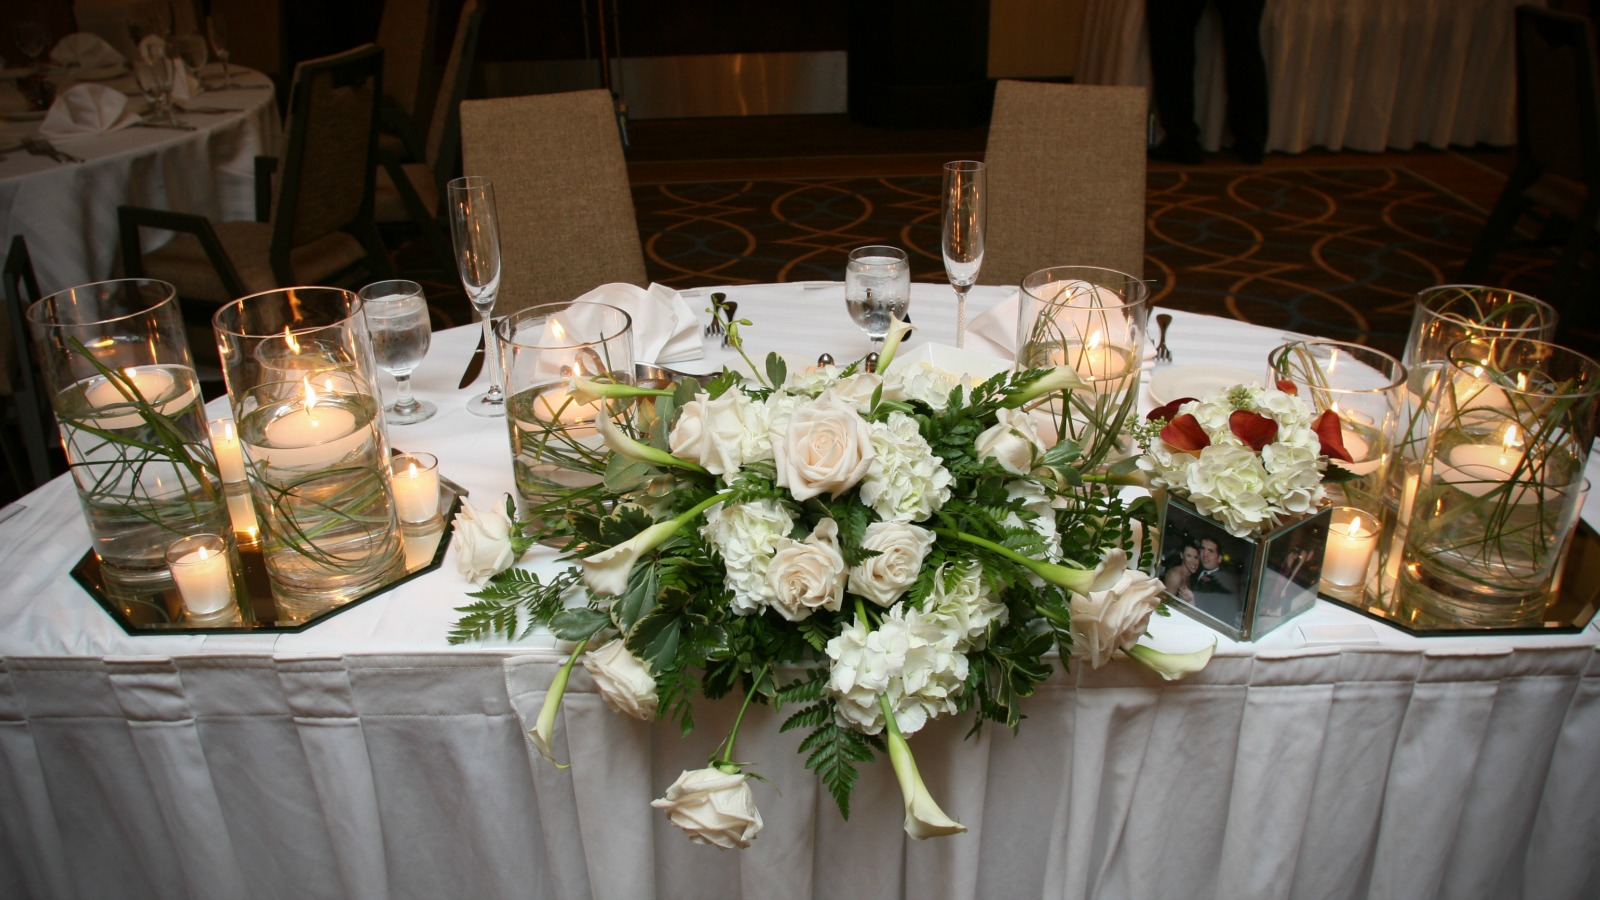 Sheraton Stamford Hotel - Connecticut Wedding Venue Sweetheart Table